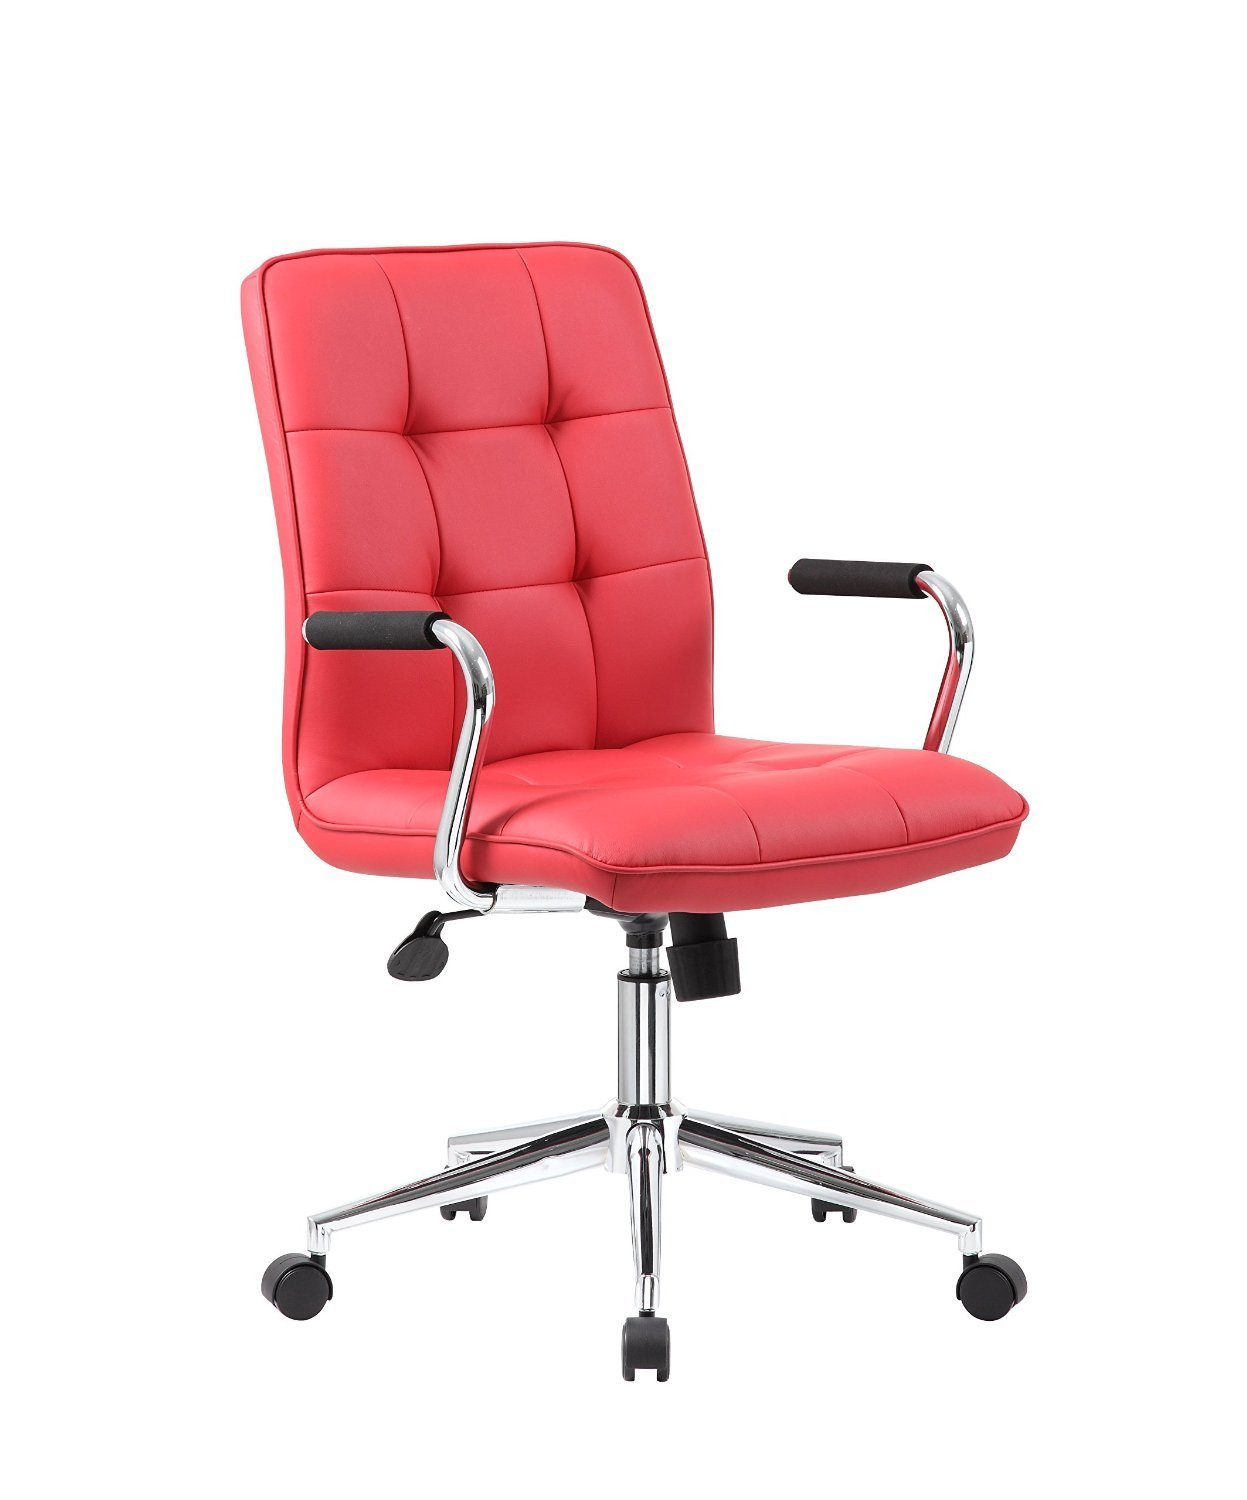 Boss Office Products B331 Rd Modern Office Chair W Chrome Arms